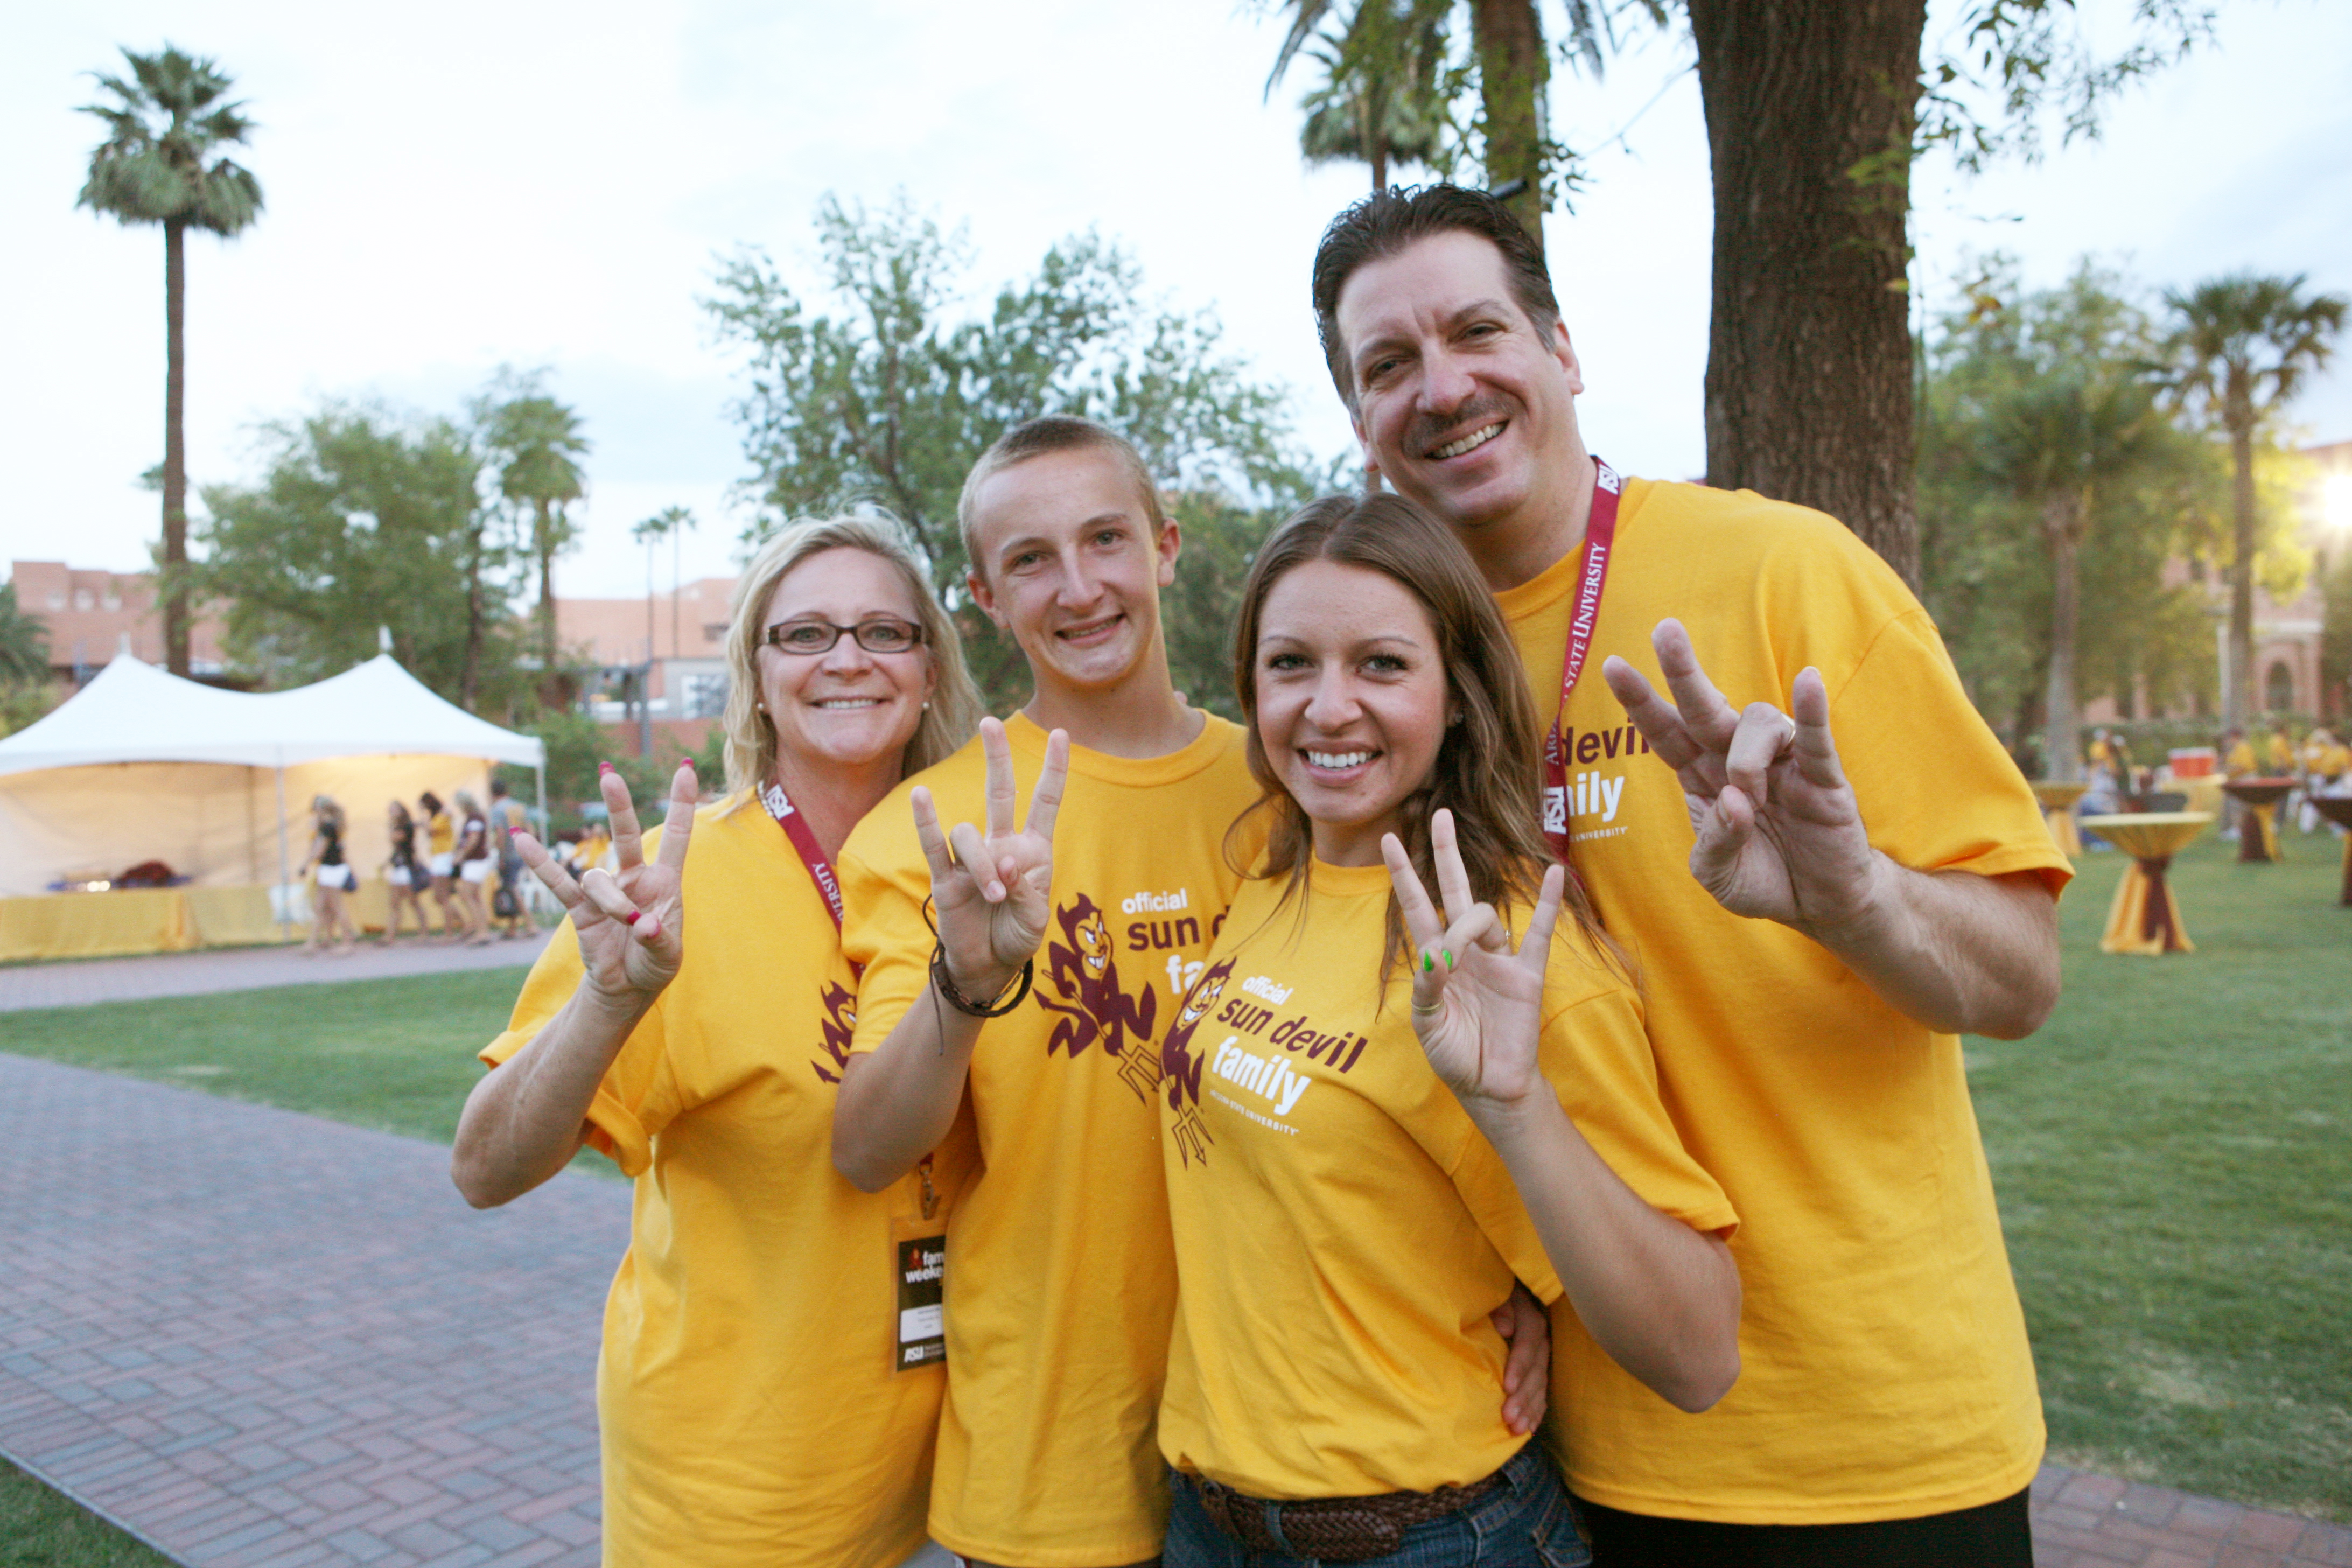 Asu parents